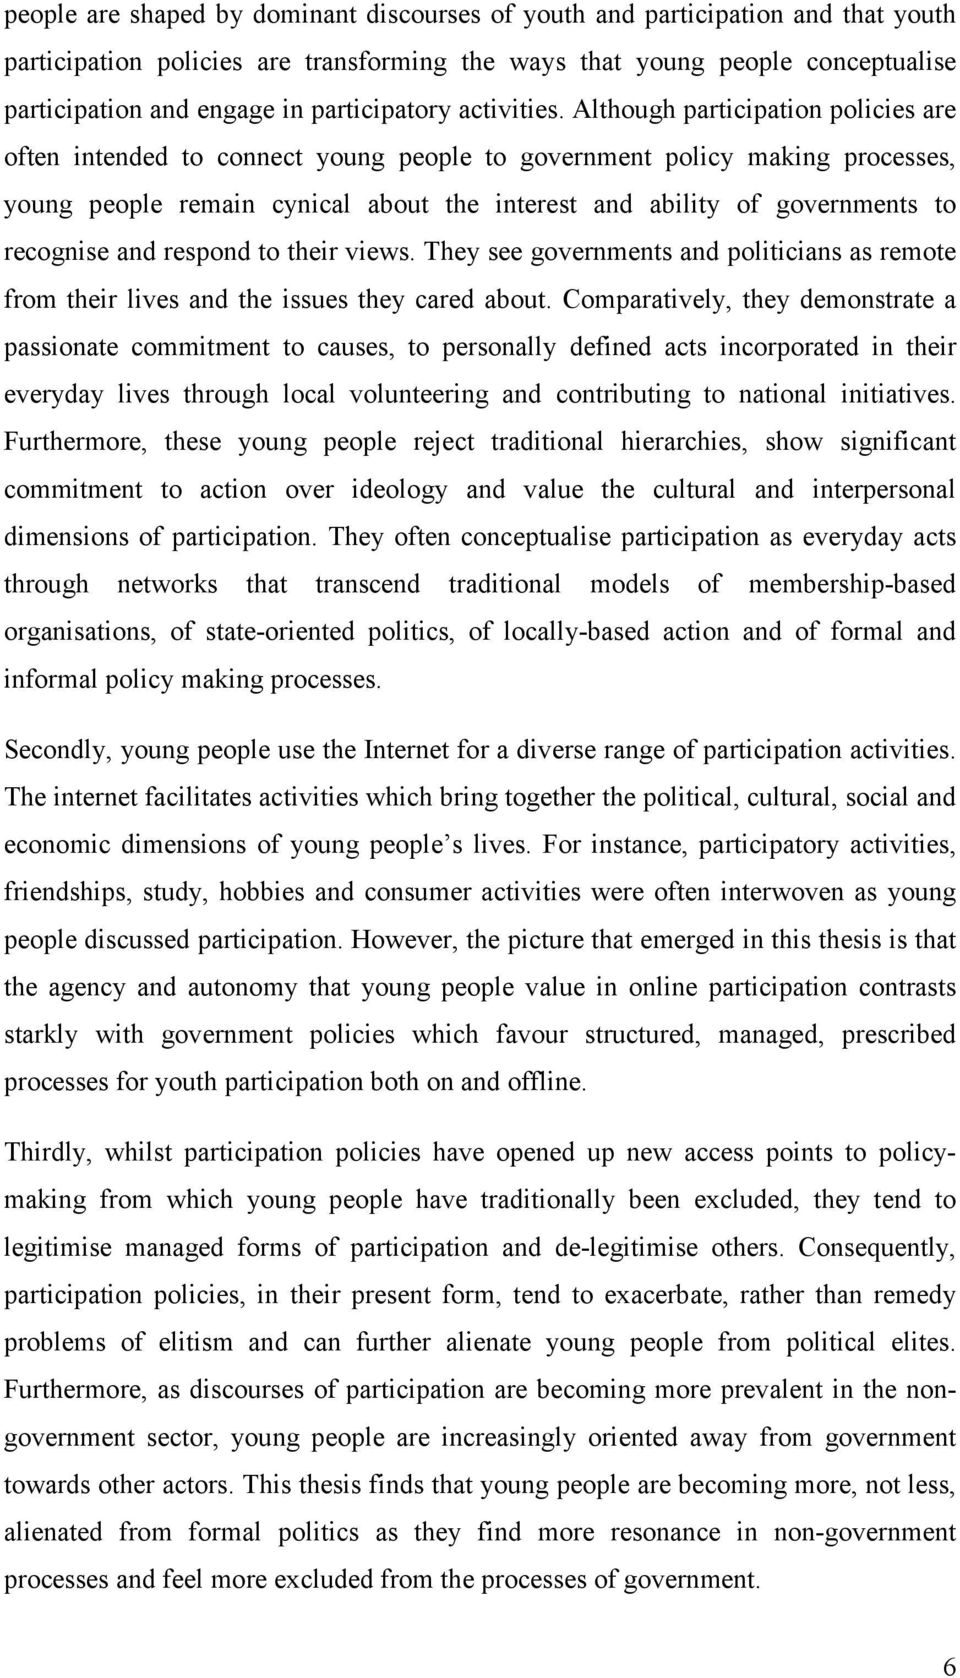 Although participation policies are often intended to connect young people to government policy making processes, young people remain cynical about the interest and ability of governments to